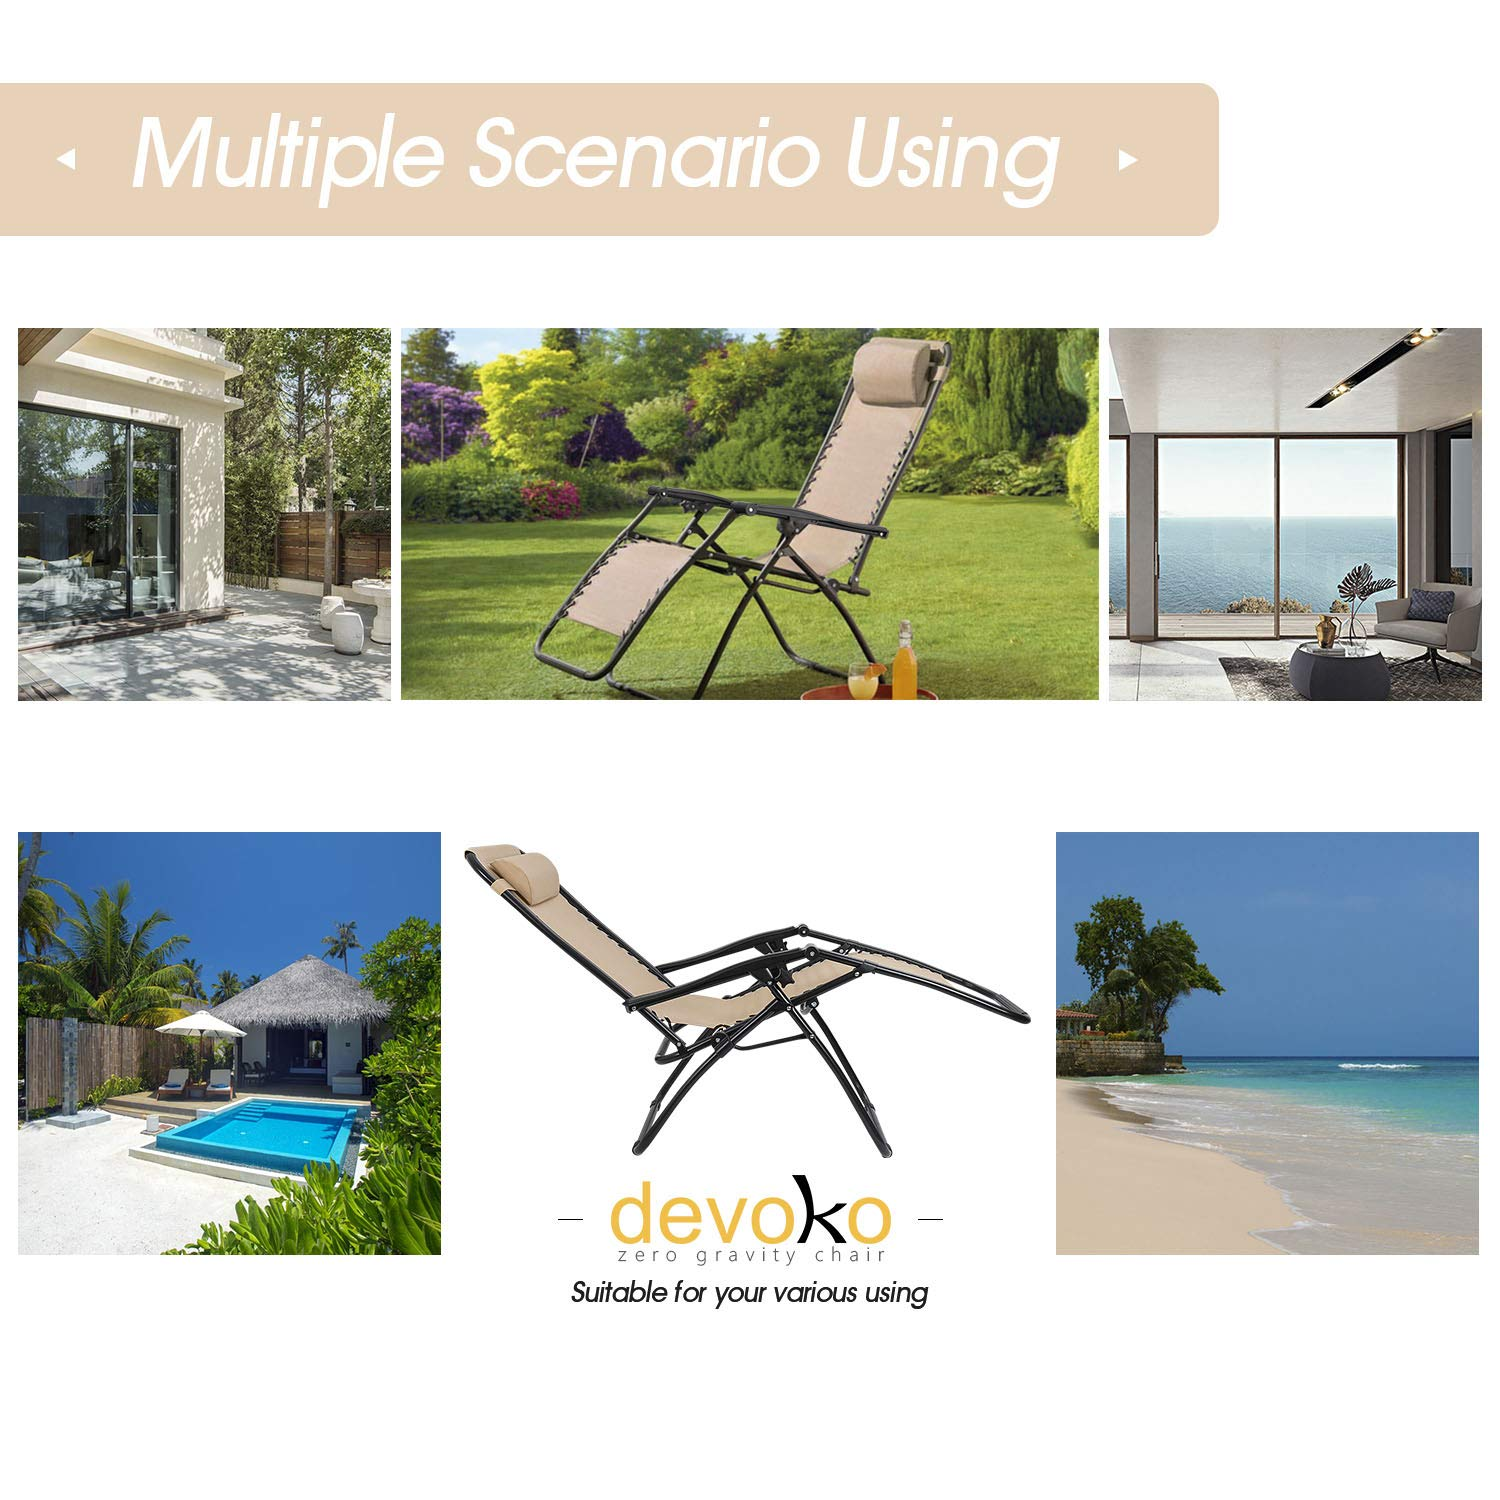 Devoko Patio Zero Gravity Chair Outdoor Folding Adjustable Reclining Chairs Pool Side Using Lawn Lounge Chair with Pillow Set of 2 (Beige) by Devoko (Image #3)